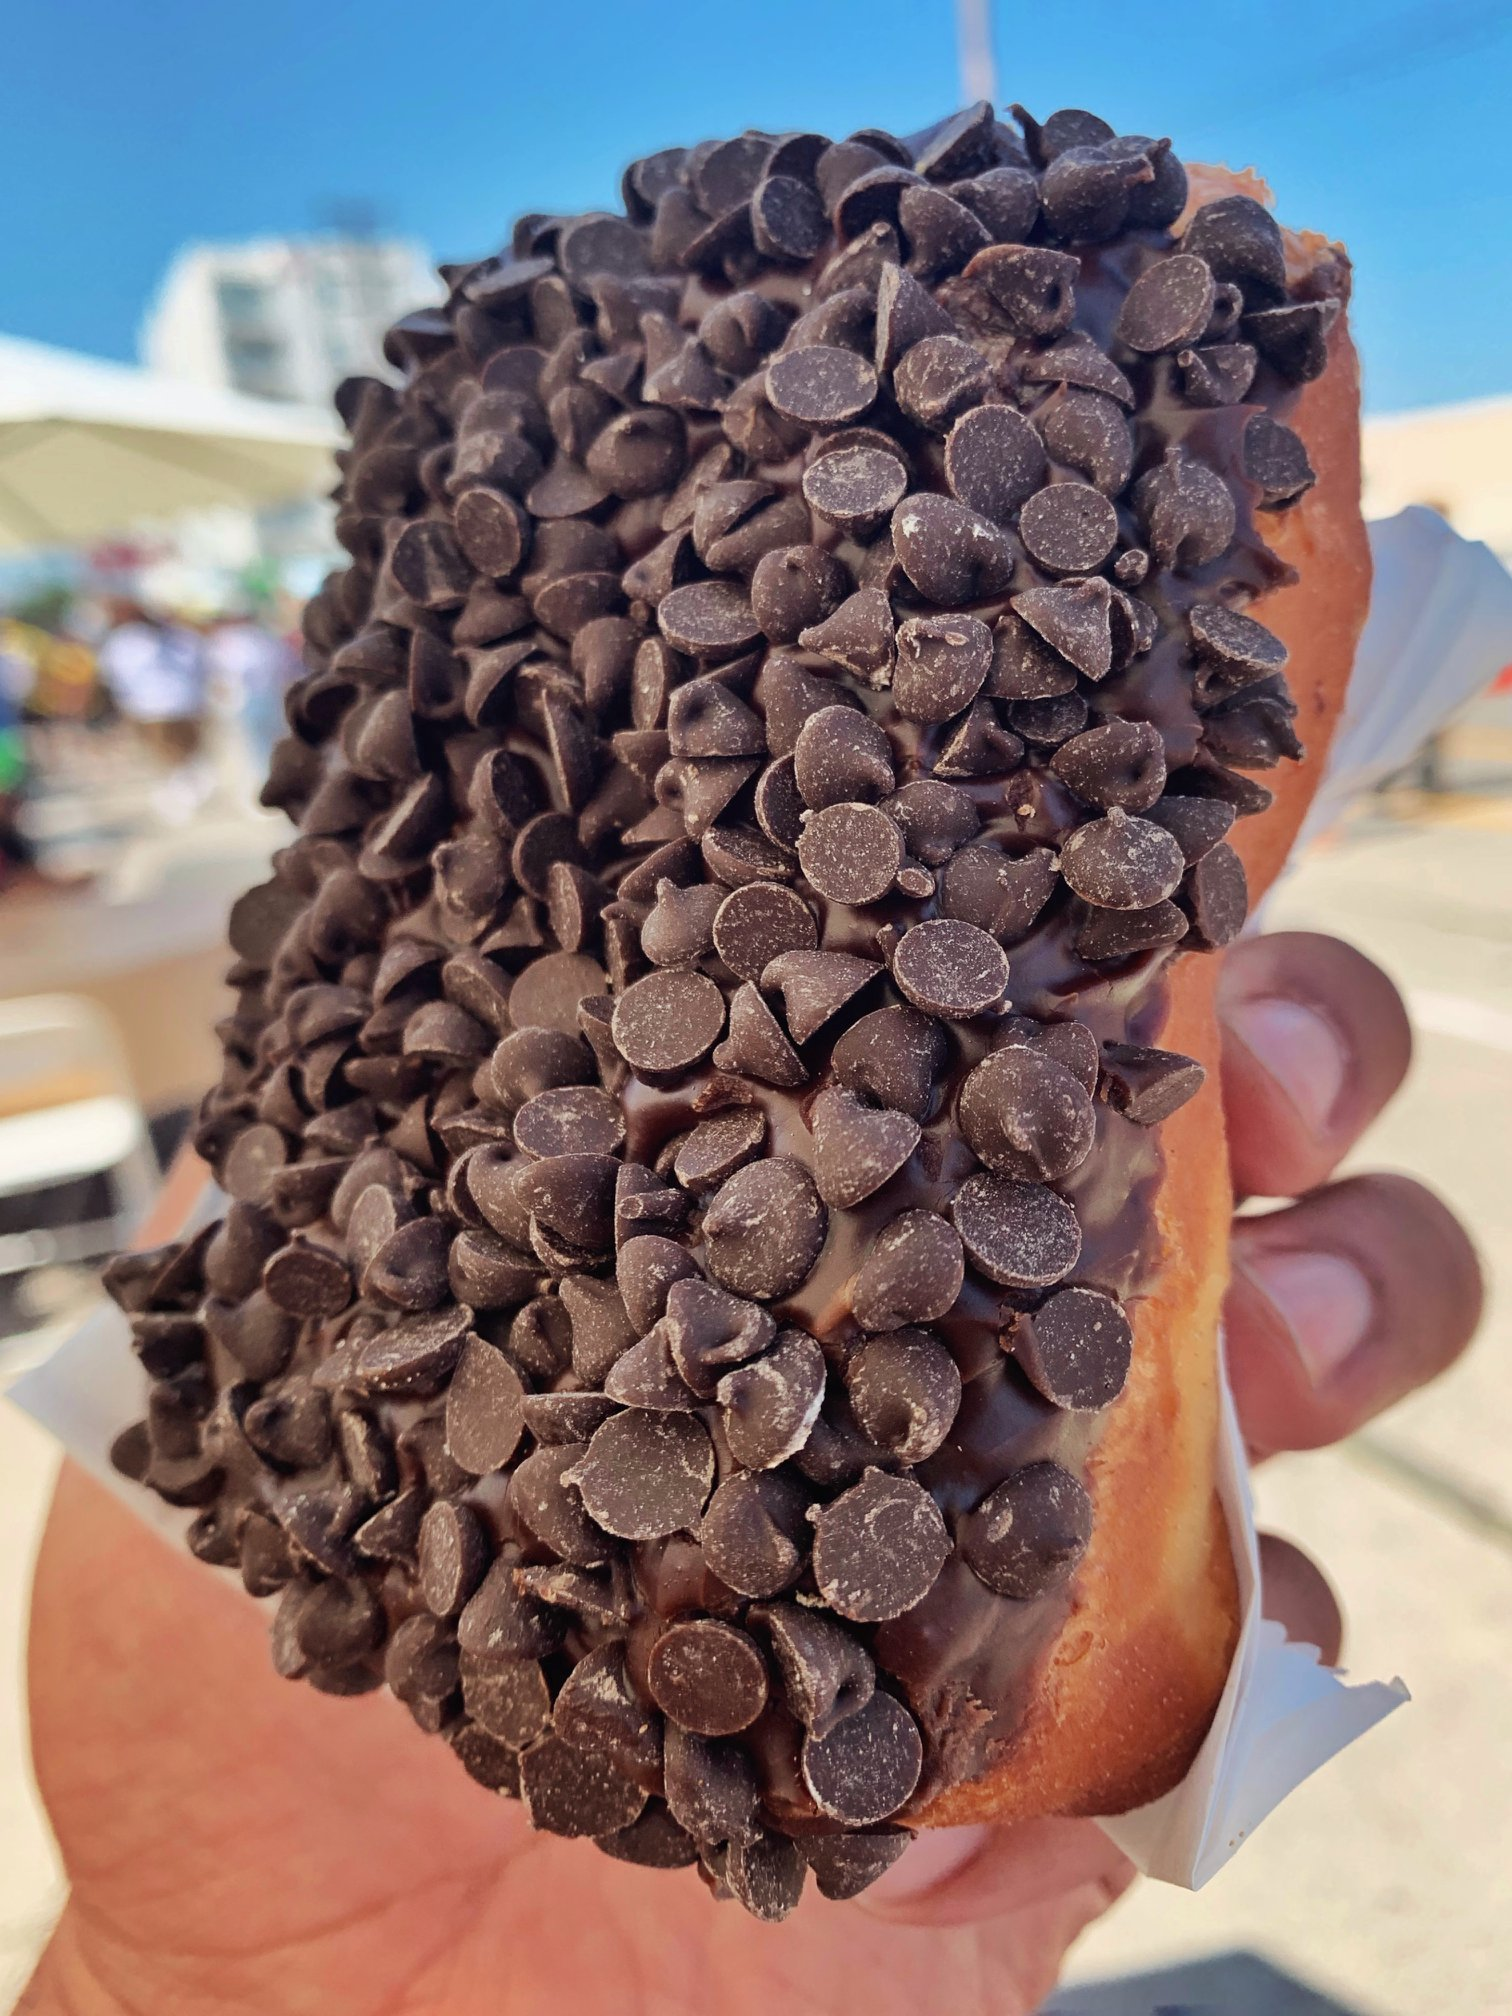 VegNews.TheDonuttery